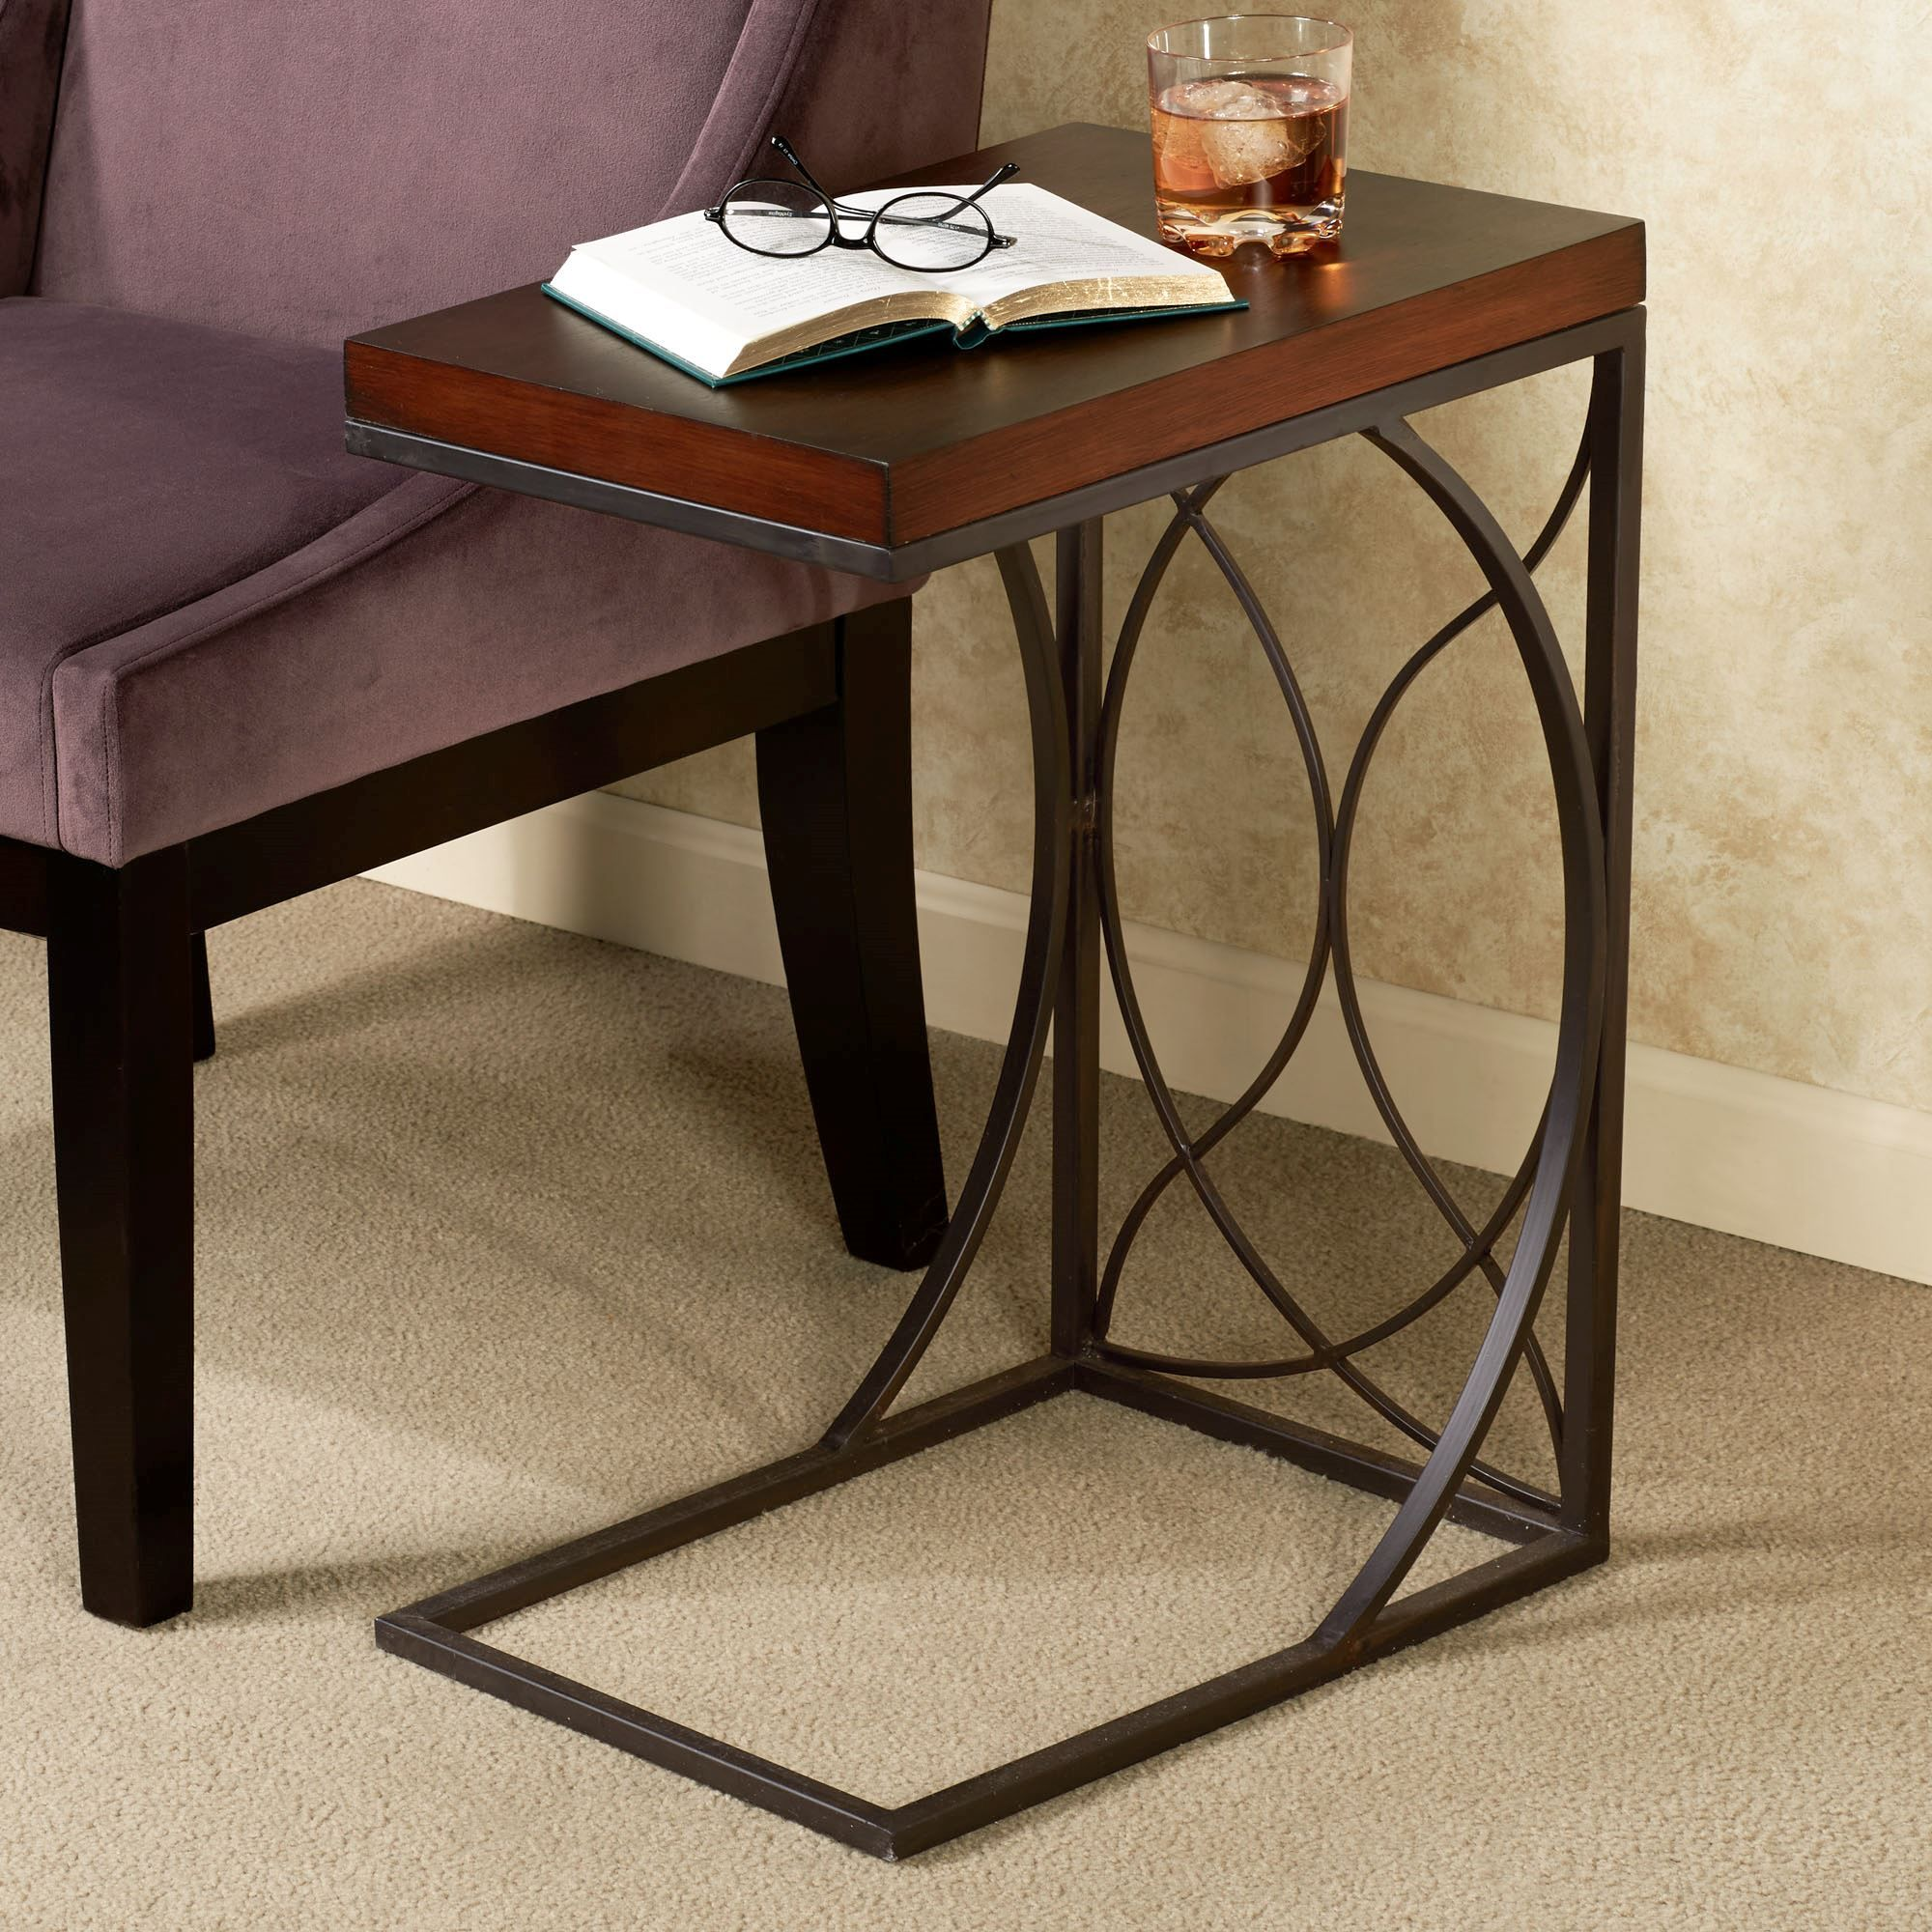 Rustic bronze polished iron c shape based sofa side table for Sofa side table